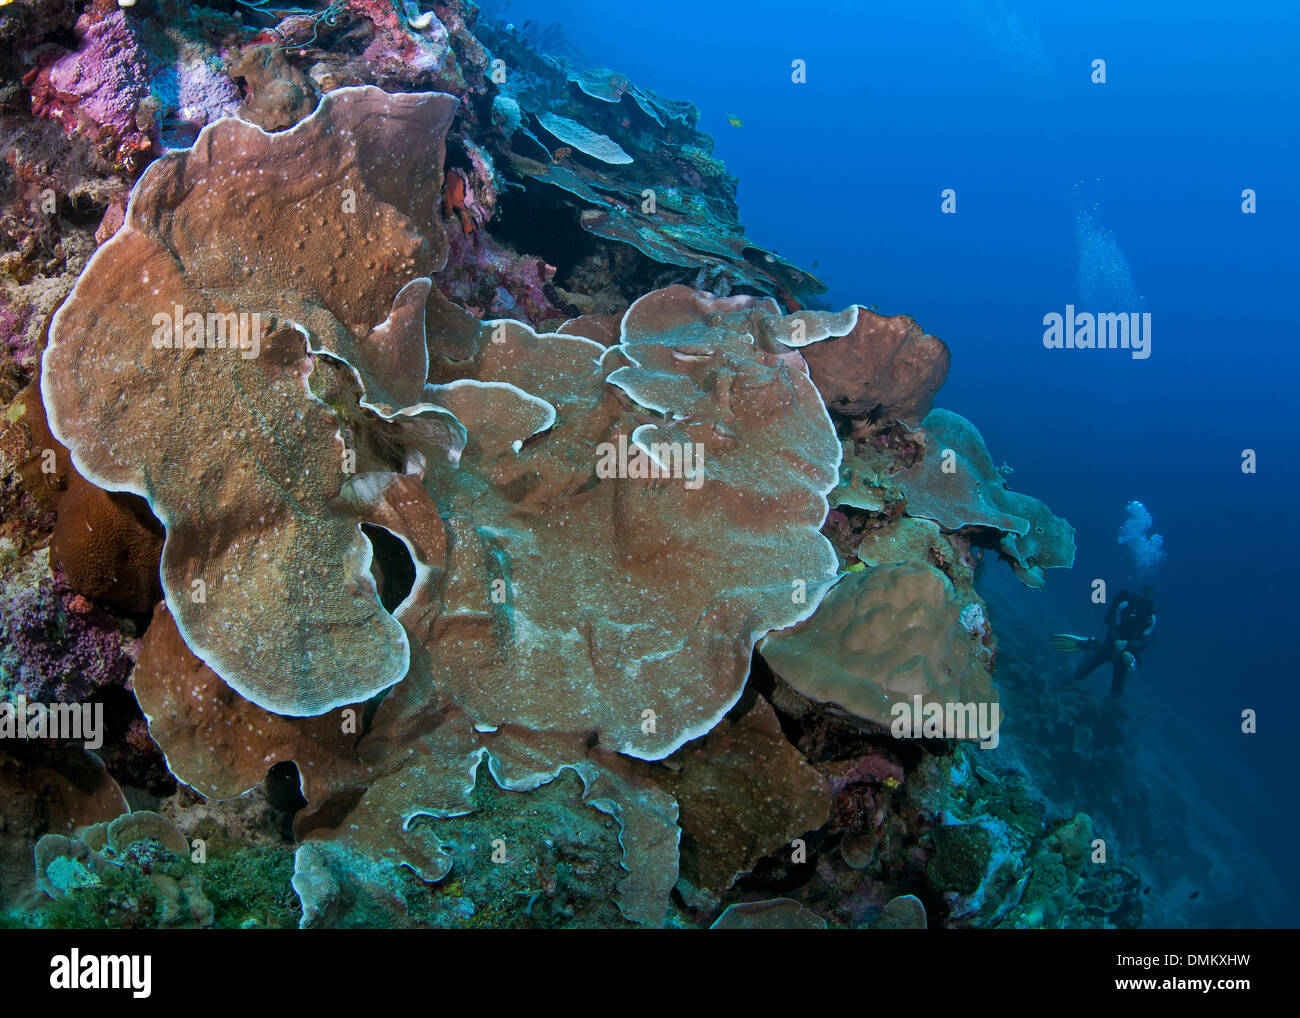 Leaf plate coral on ledge of wall reef with scuba diver in background. - Stock Image